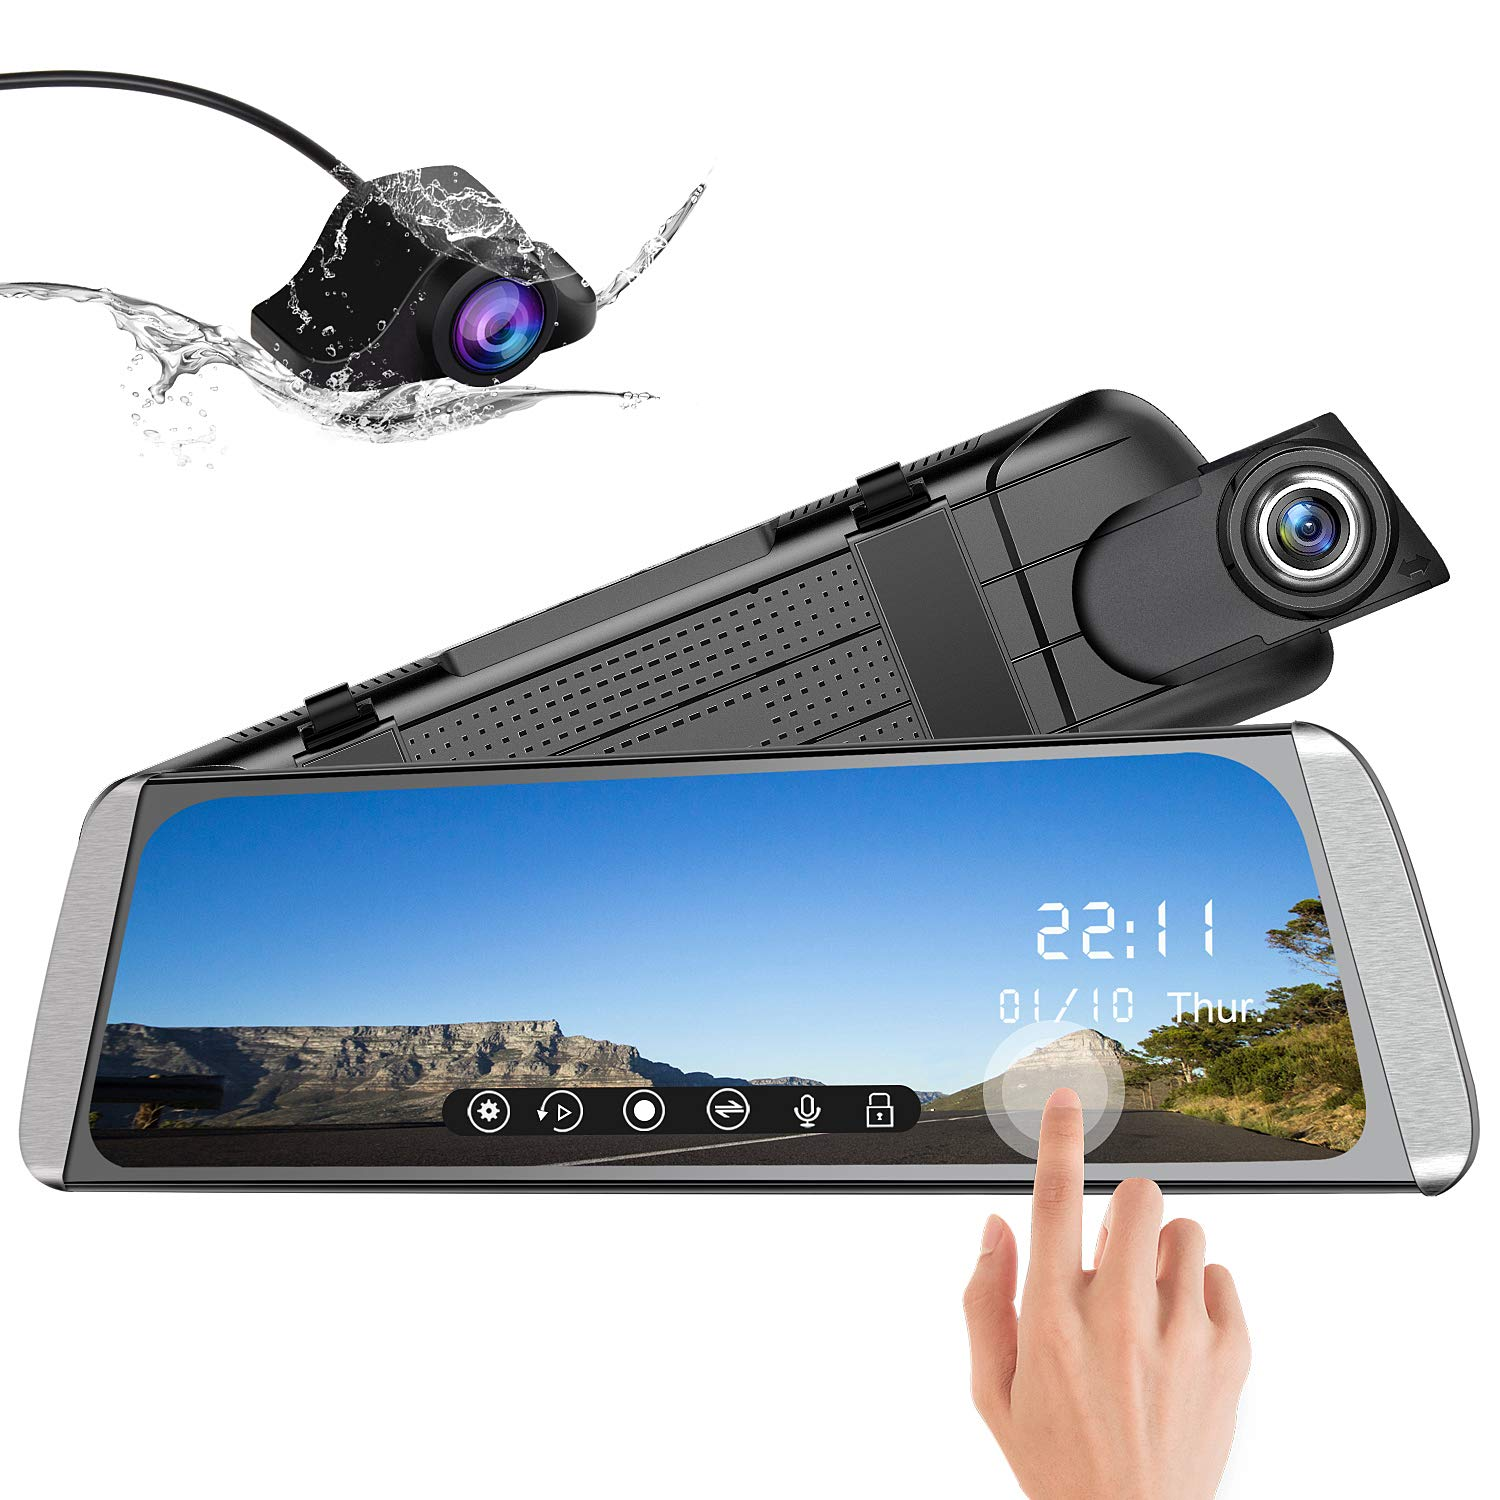 AWESAFE 10 Inch Mirror Dash Cam 1080P Front and Rear Dual Lens,Rear Mirror Camera with 24 Hours Parking Monitor and G Sensor by awesafe